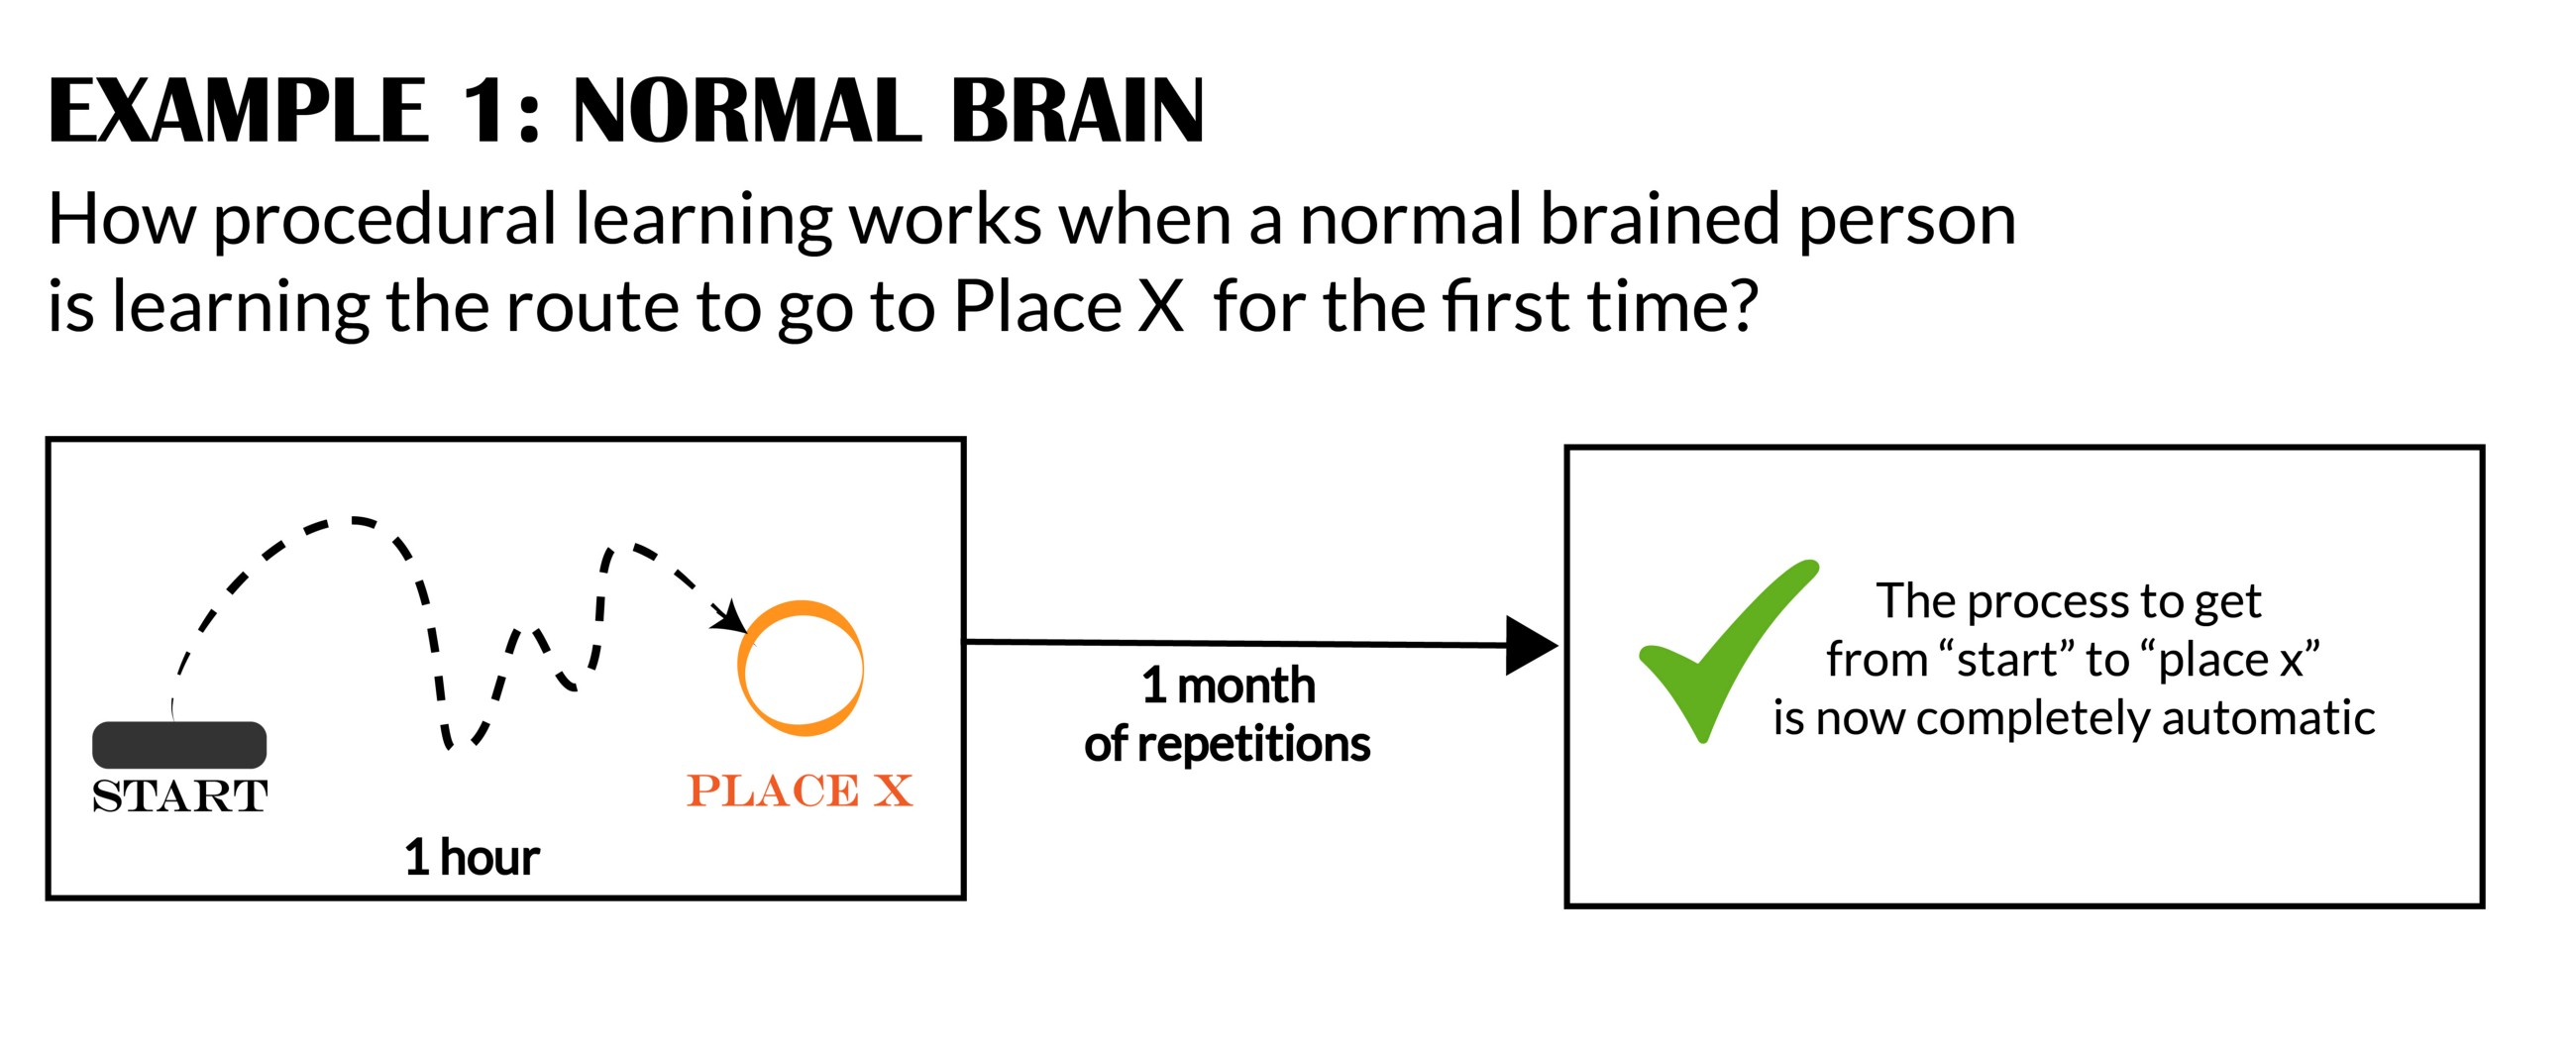 Implicit Learning Works Differently >> Into The Dyslexic Brain 4 Illustrated Differences To Guide You